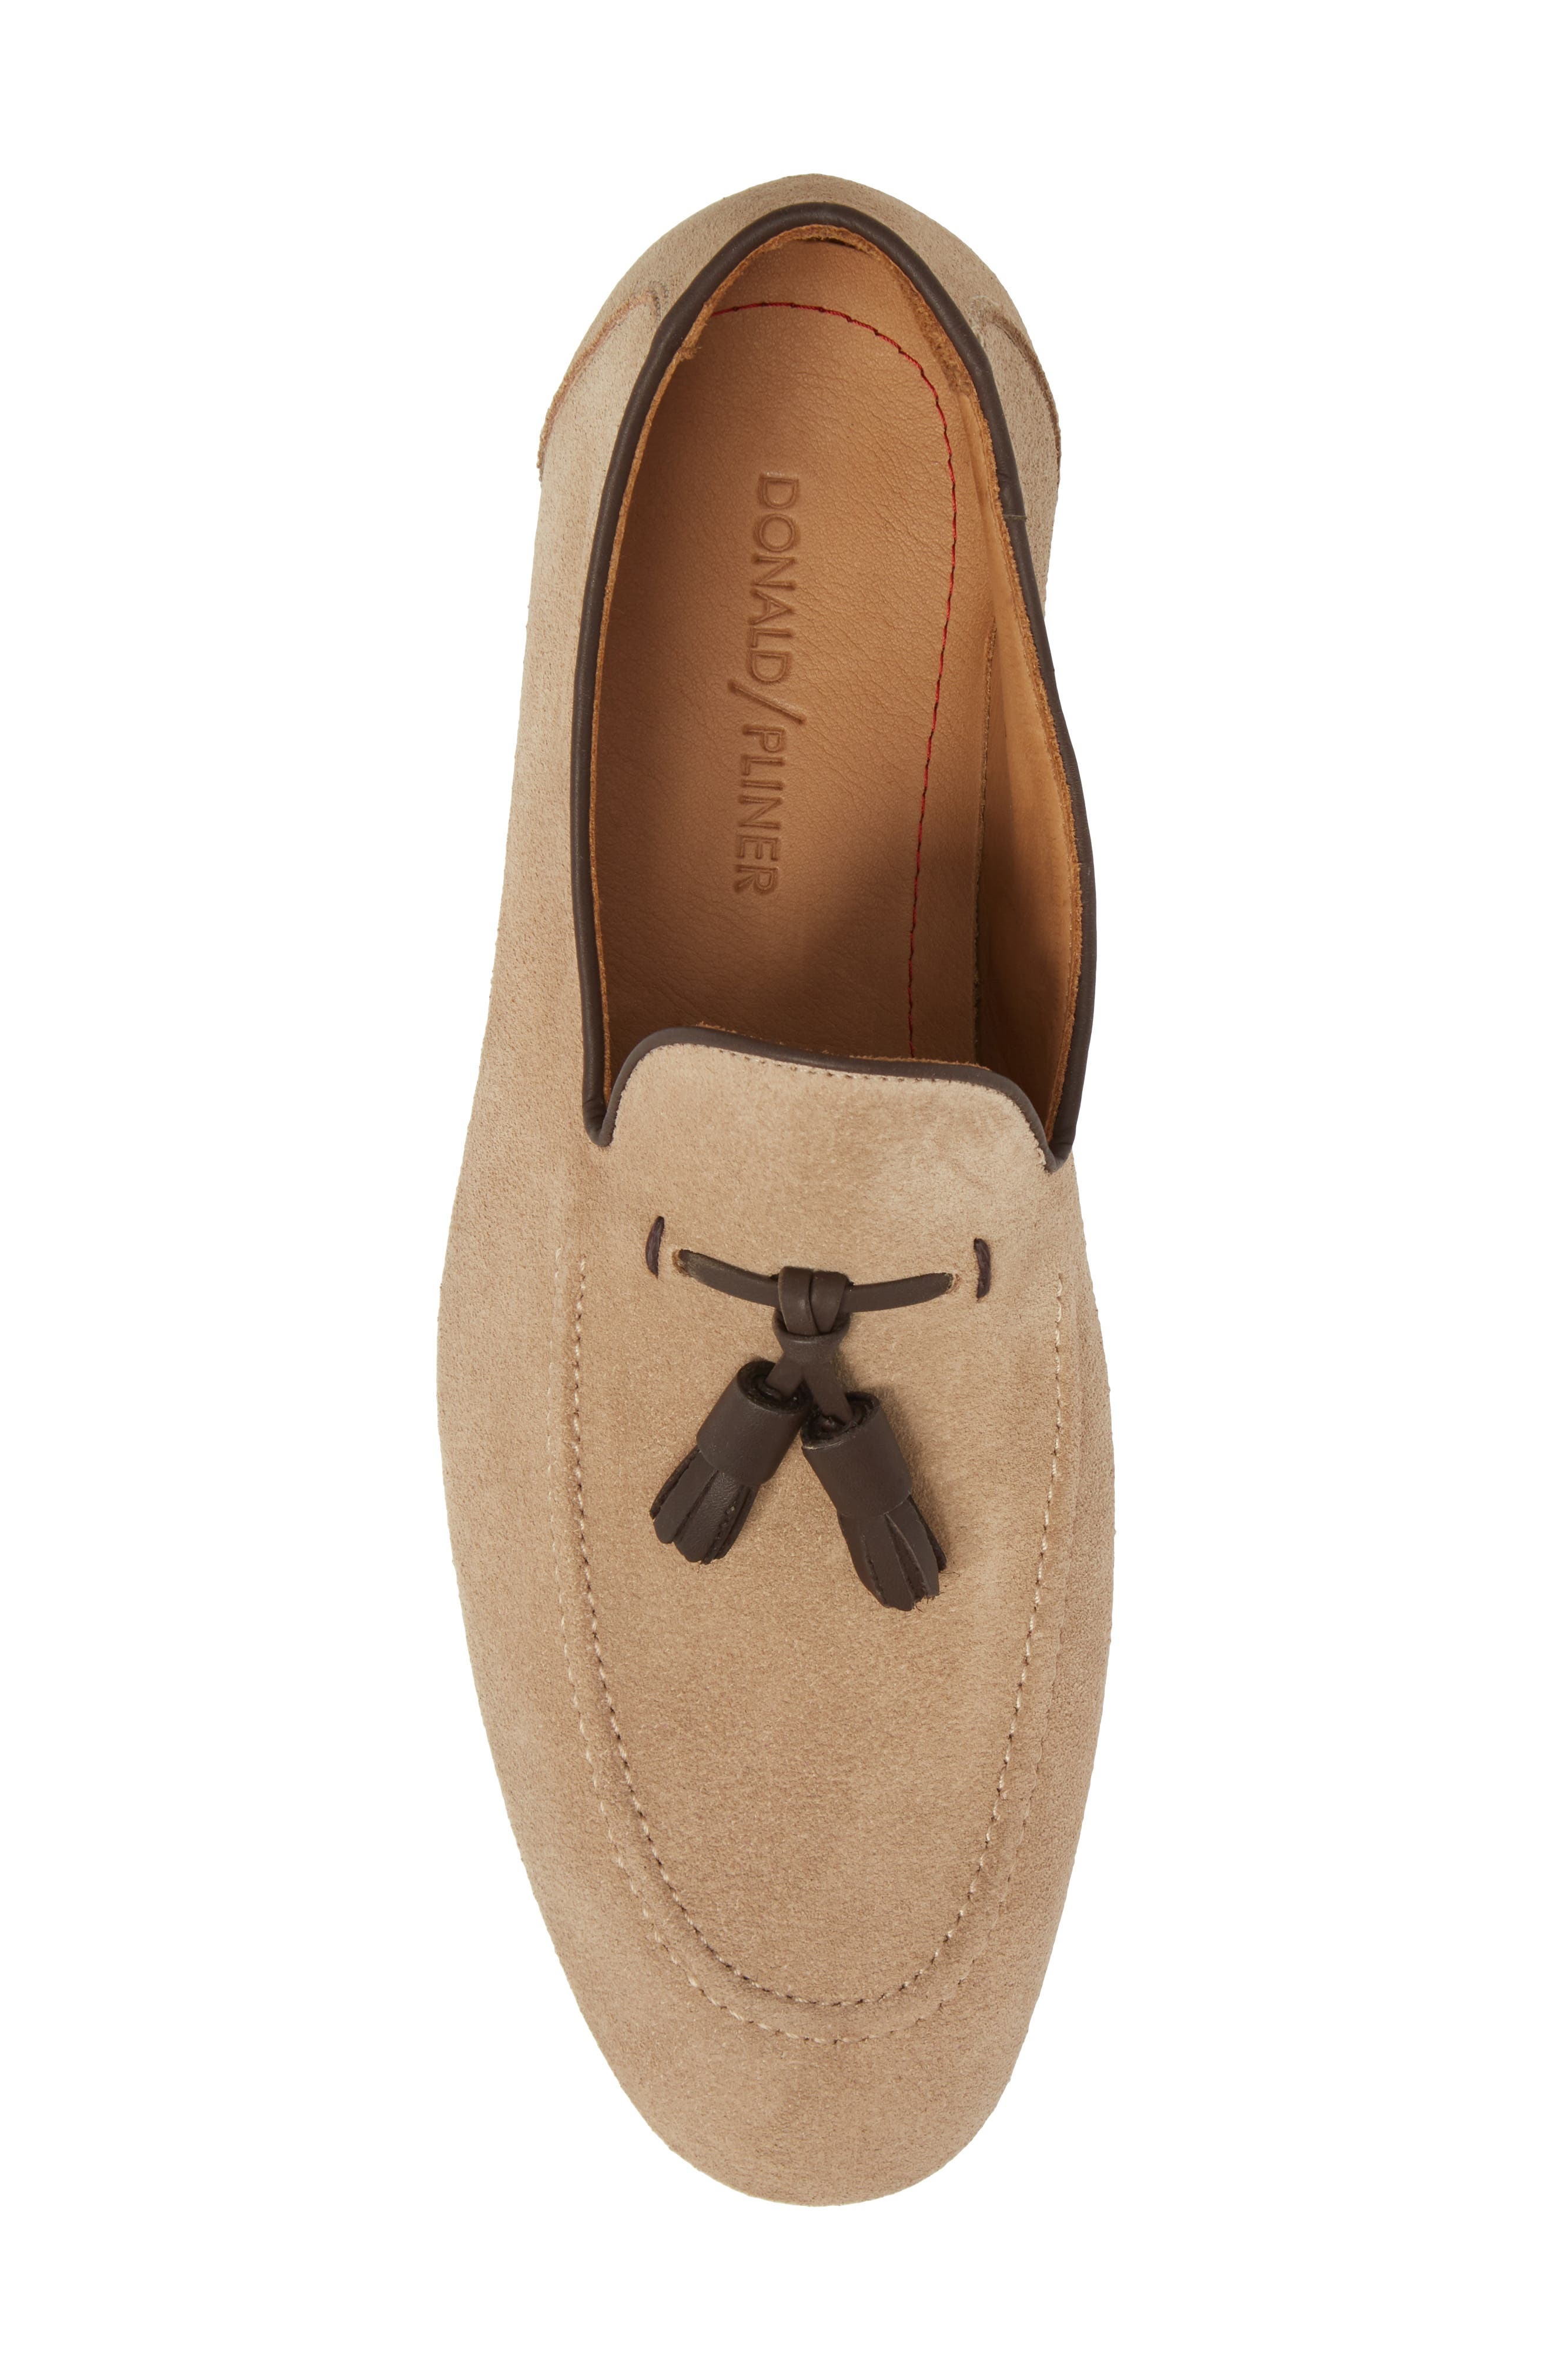 Ario Tassel Loafer,                             Alternate thumbnail 5, color,                             Sand Suede